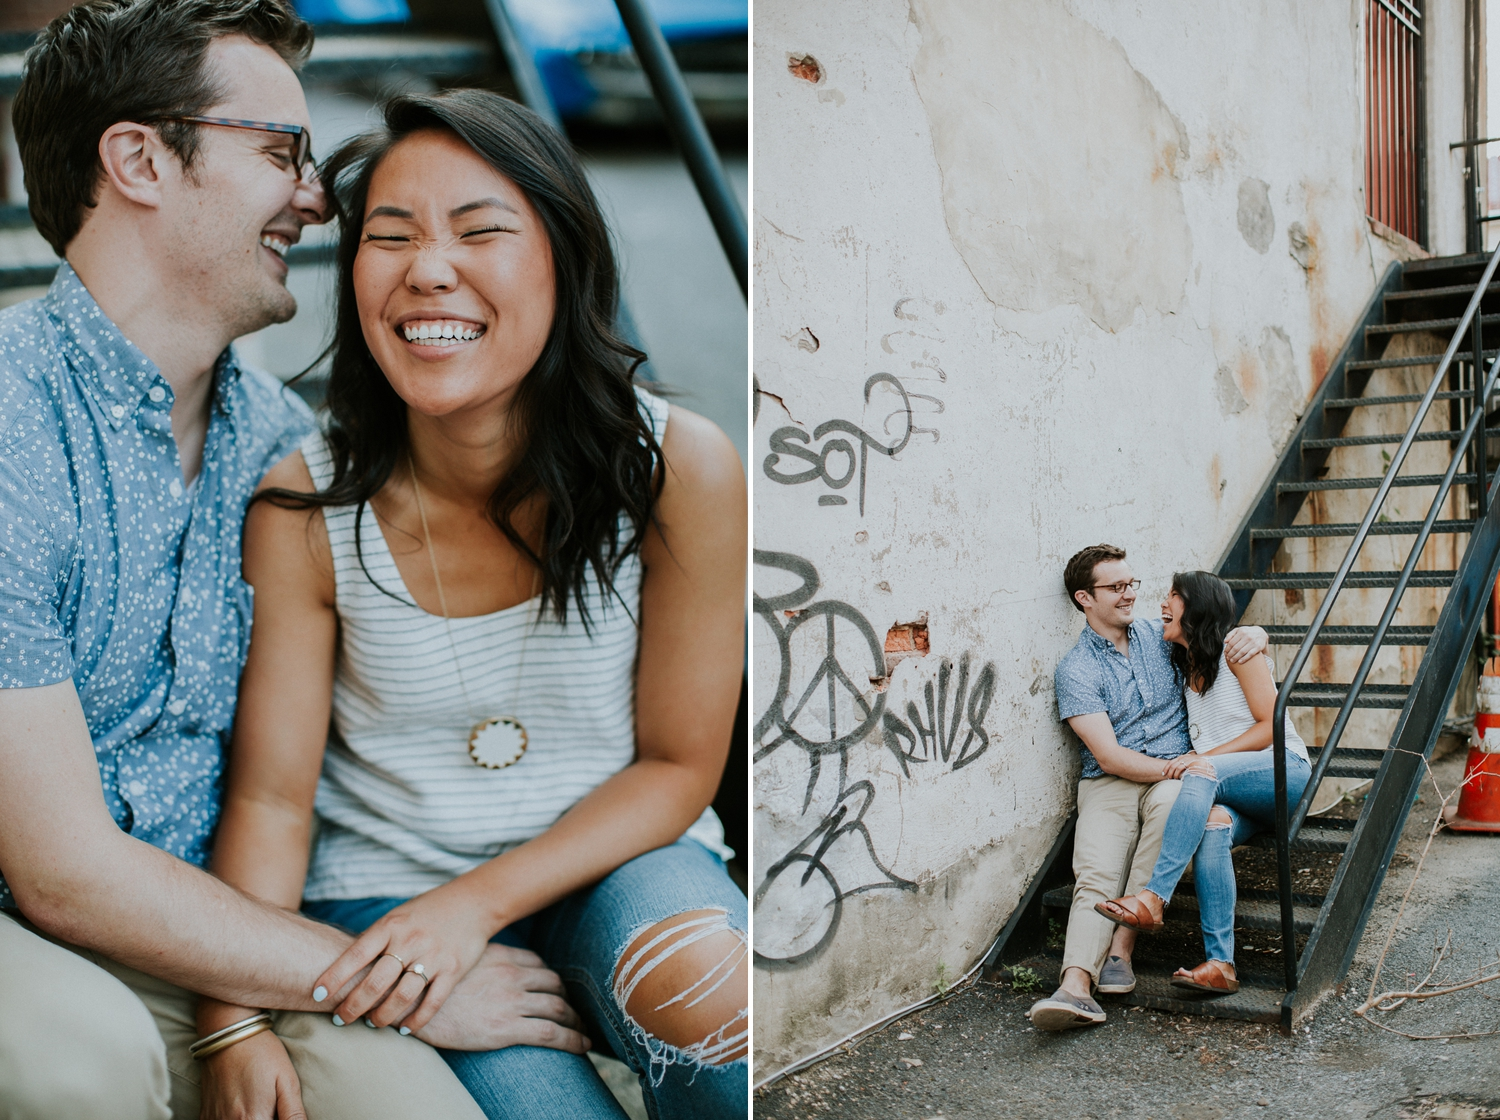 washington_dc_blagden_alley_engagement_photography 1.jpg